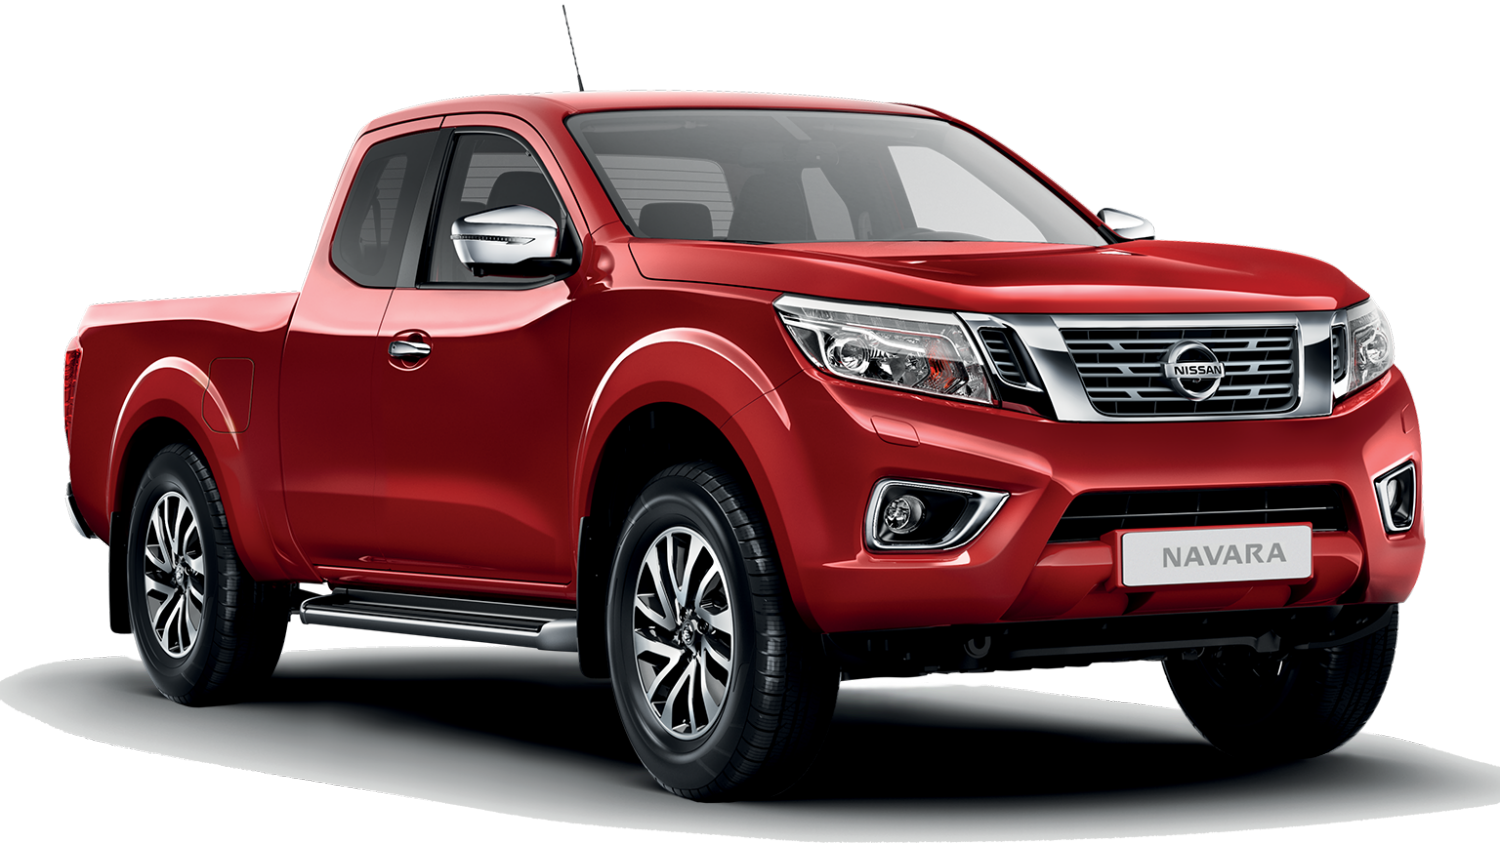 prix caract ristiques nissan navara nissan. Black Bedroom Furniture Sets. Home Design Ideas